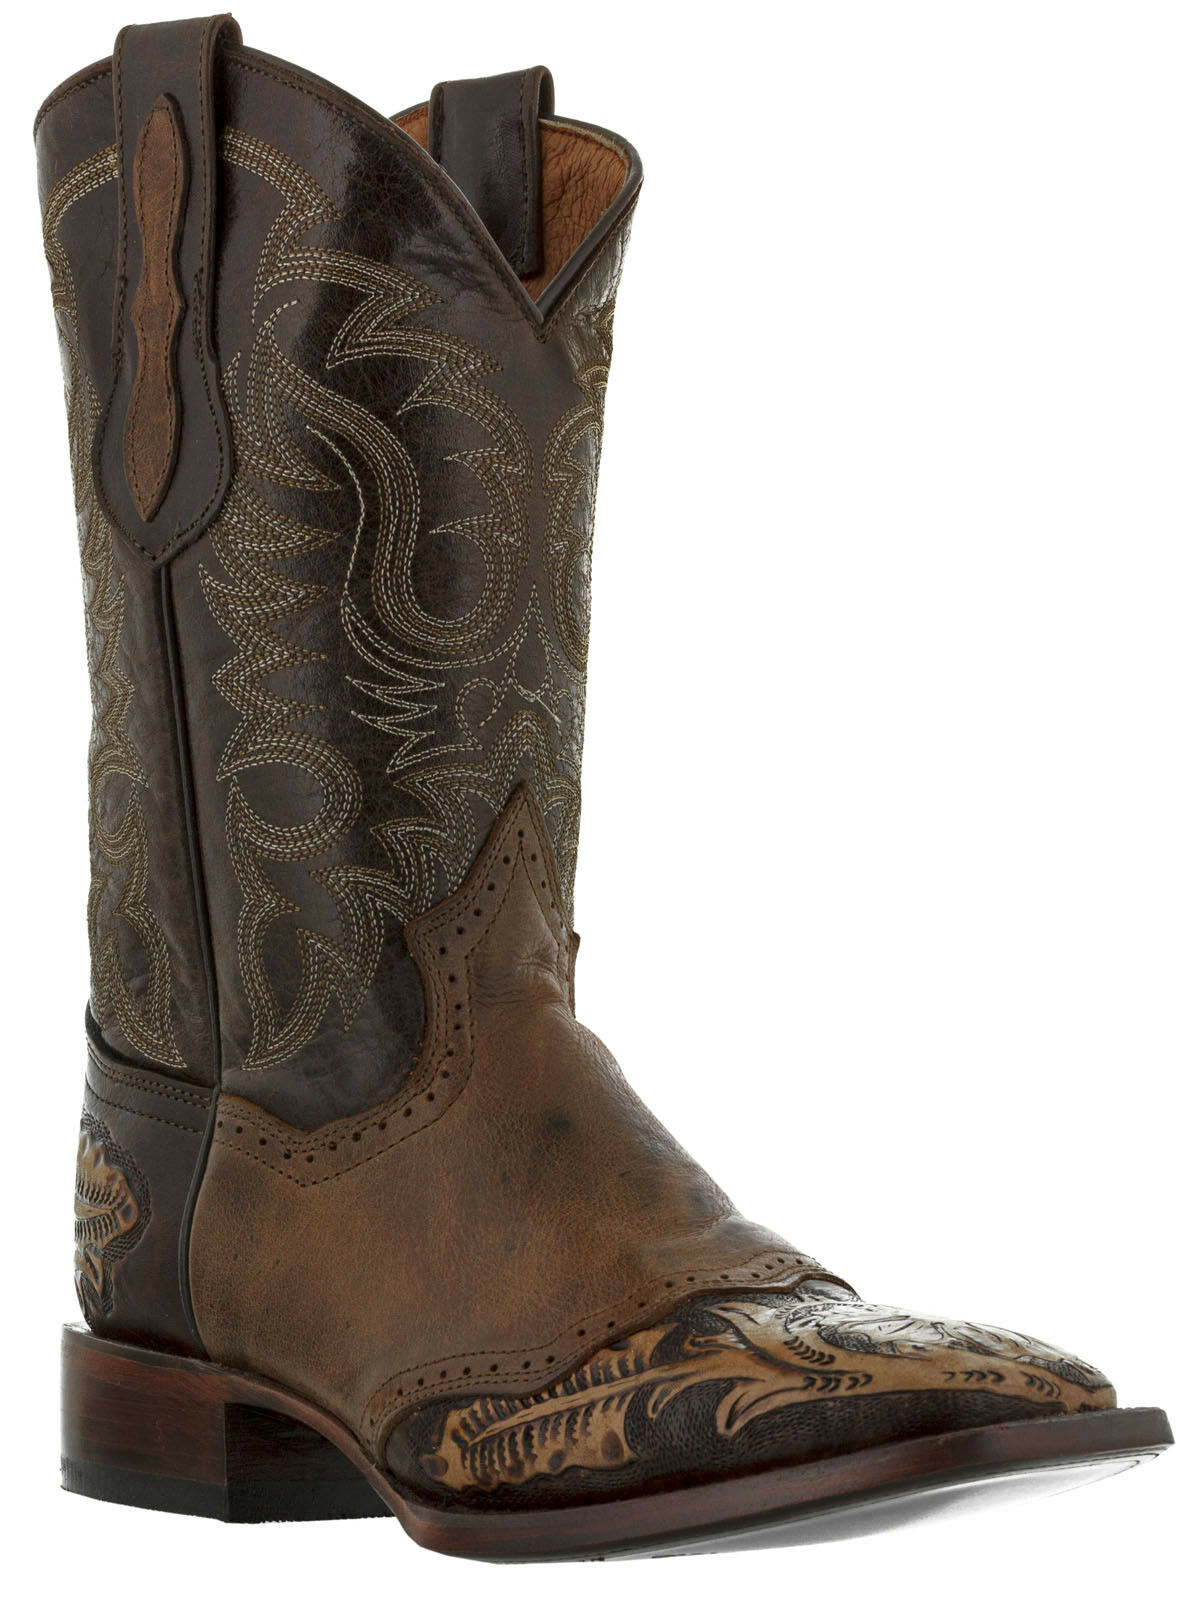 Mens Marronee hand tooled Marronee lealther cowboy stivali rodeo square toe